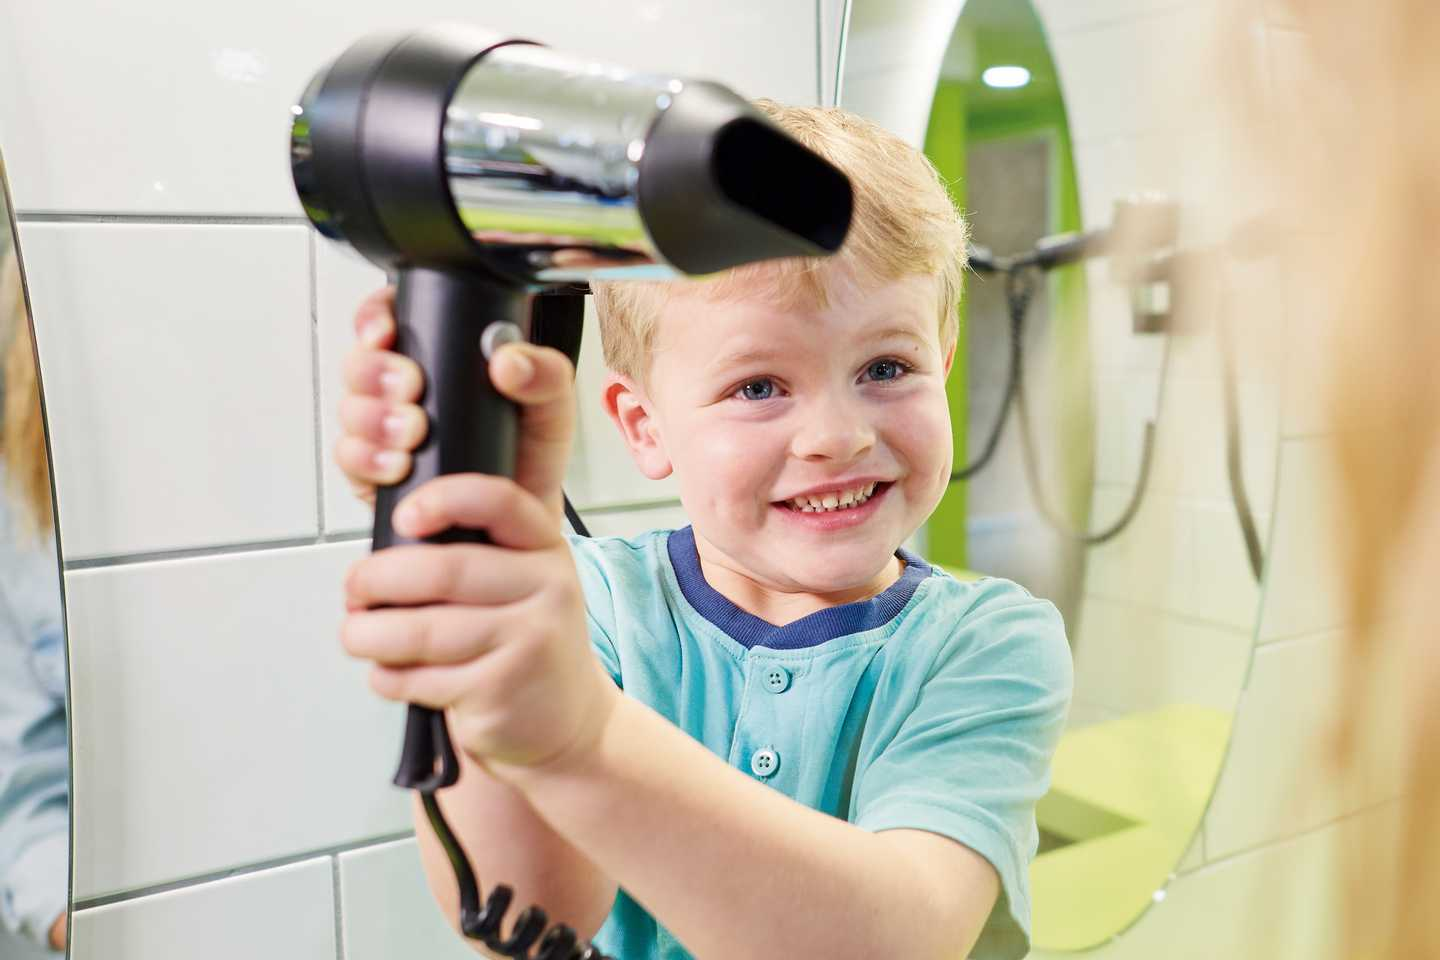 A young boy holding a hairdryer